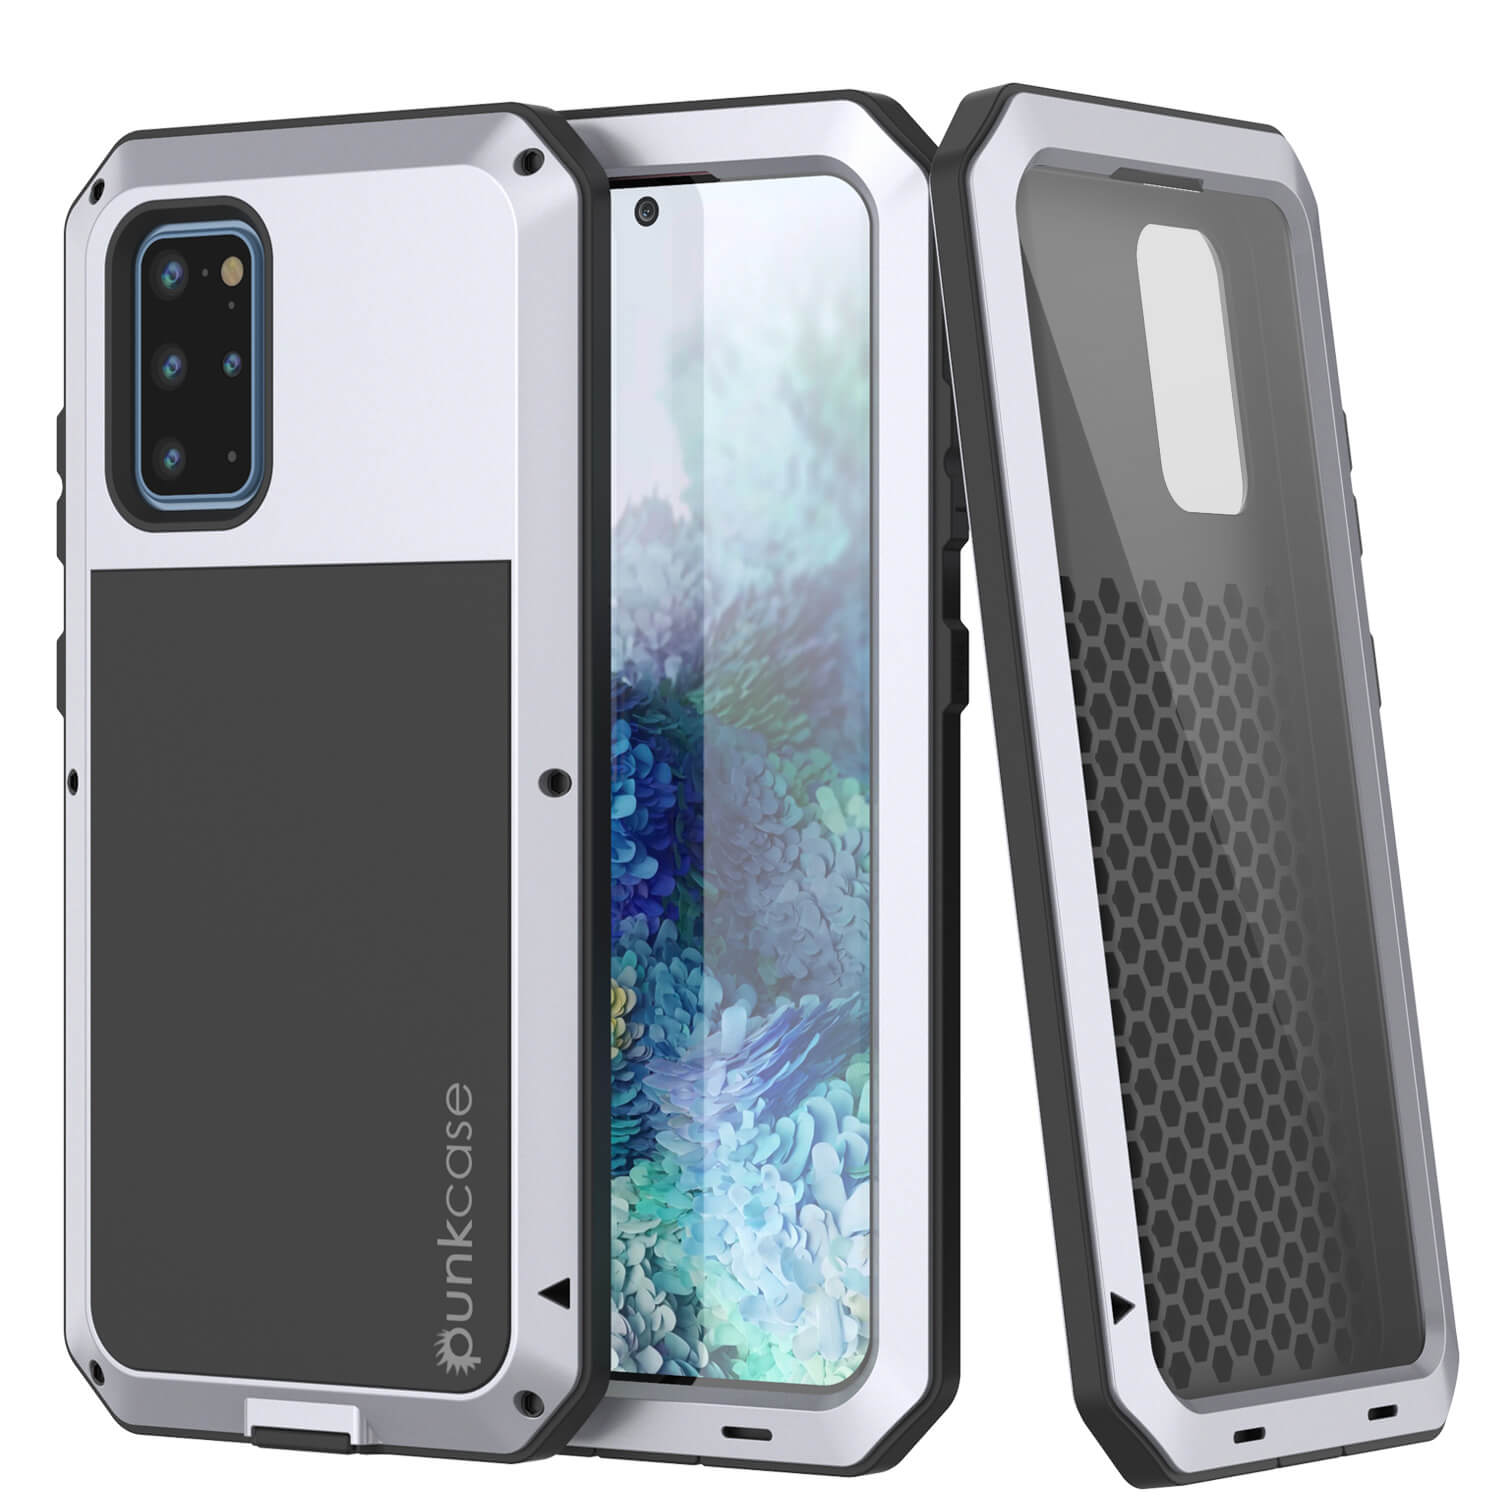 Galaxy s20+ Plus Metal Case, Heavy Duty Military Grade Rugged Armor Cover [White]